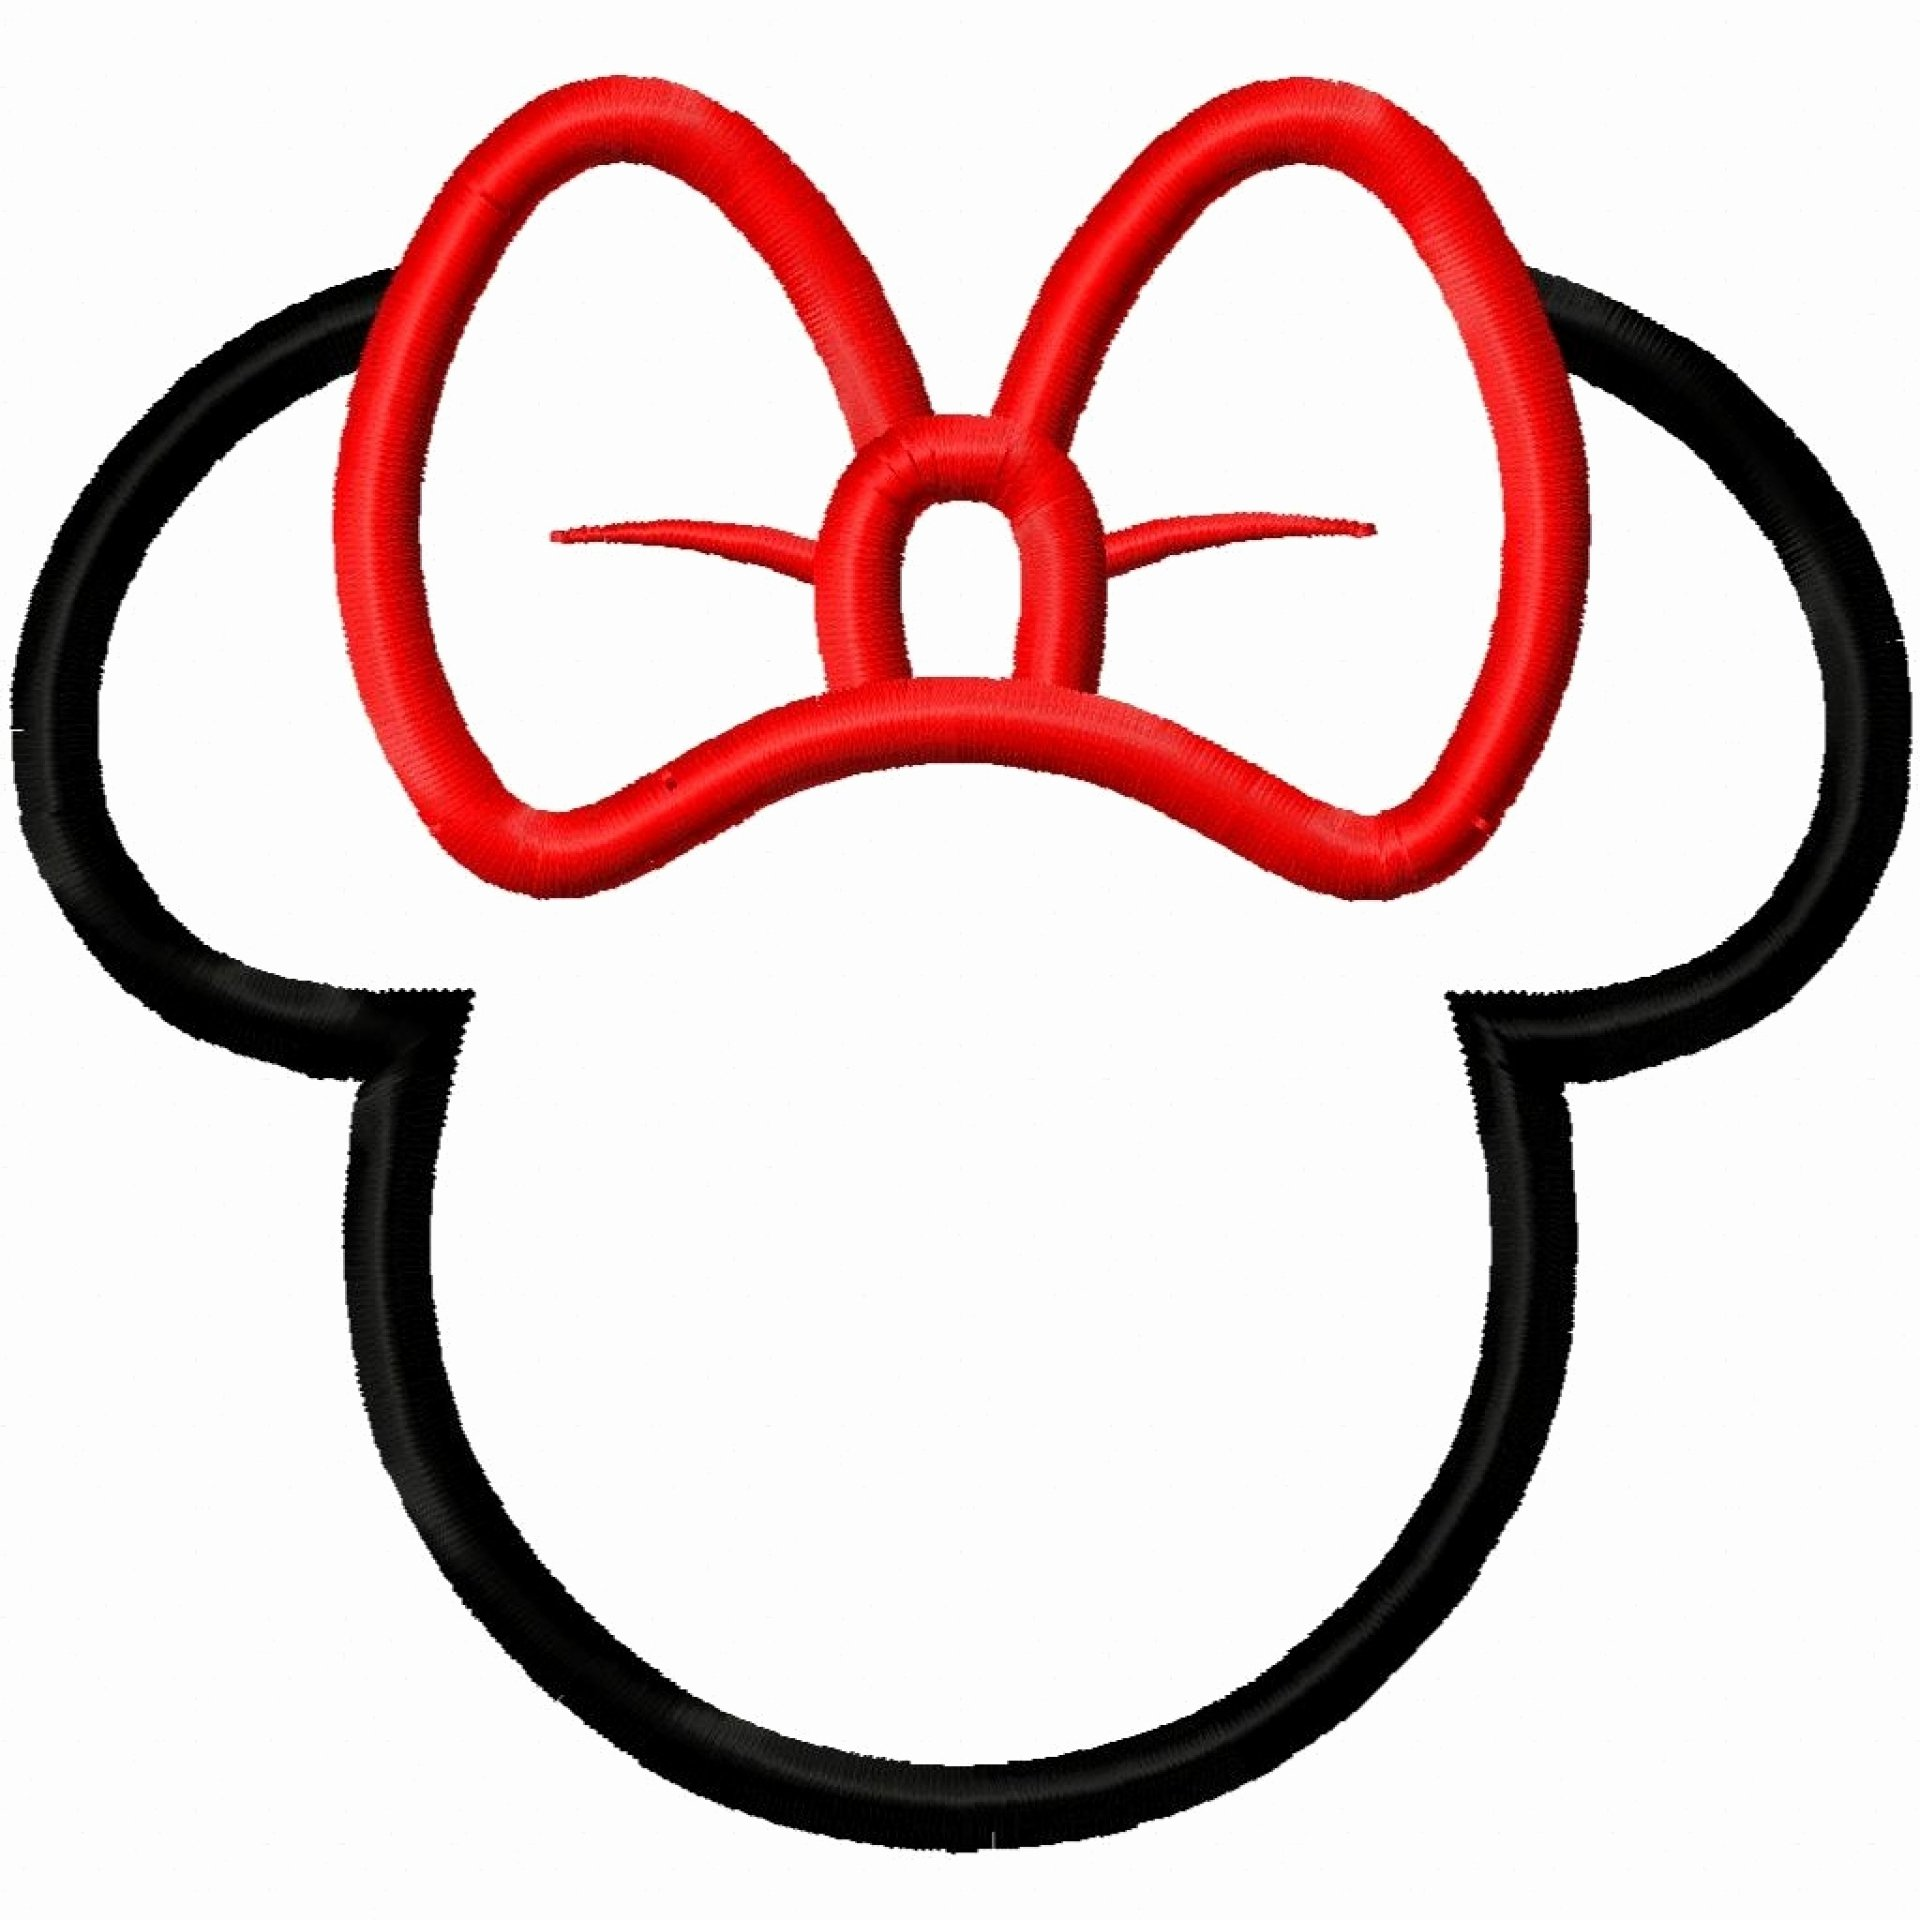 Minnie Mouse Head Silhouette Printable Best Of Minnie Mouse Head Clip Art